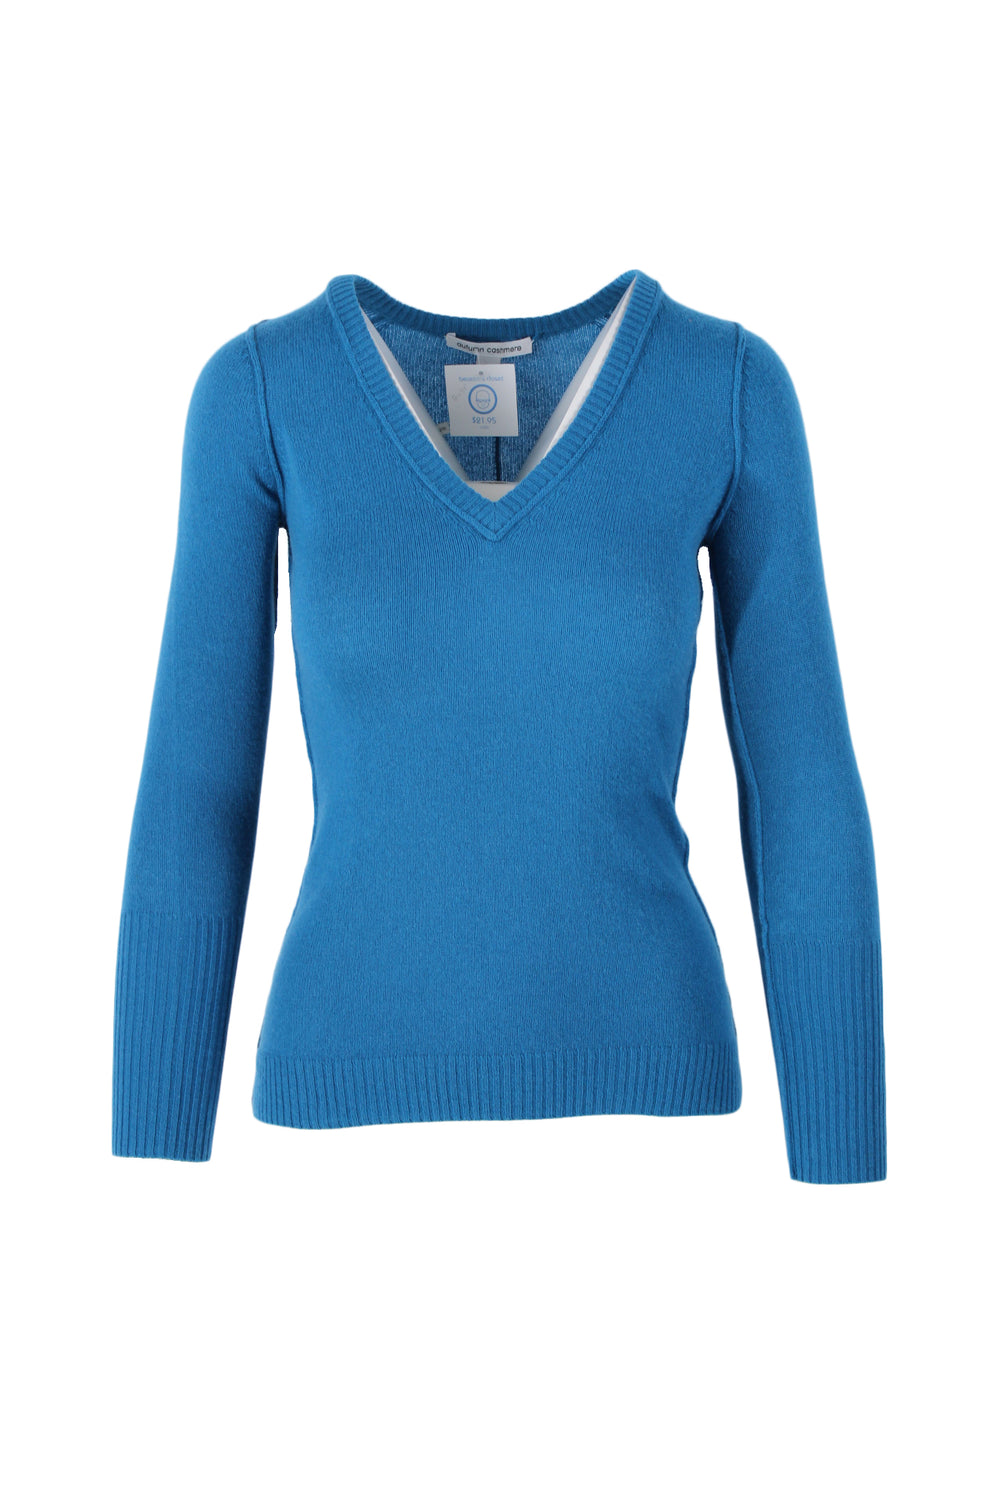 autumn cashmere aqua v-neck sweater. featuring exposed seam details and rib-knit hems.